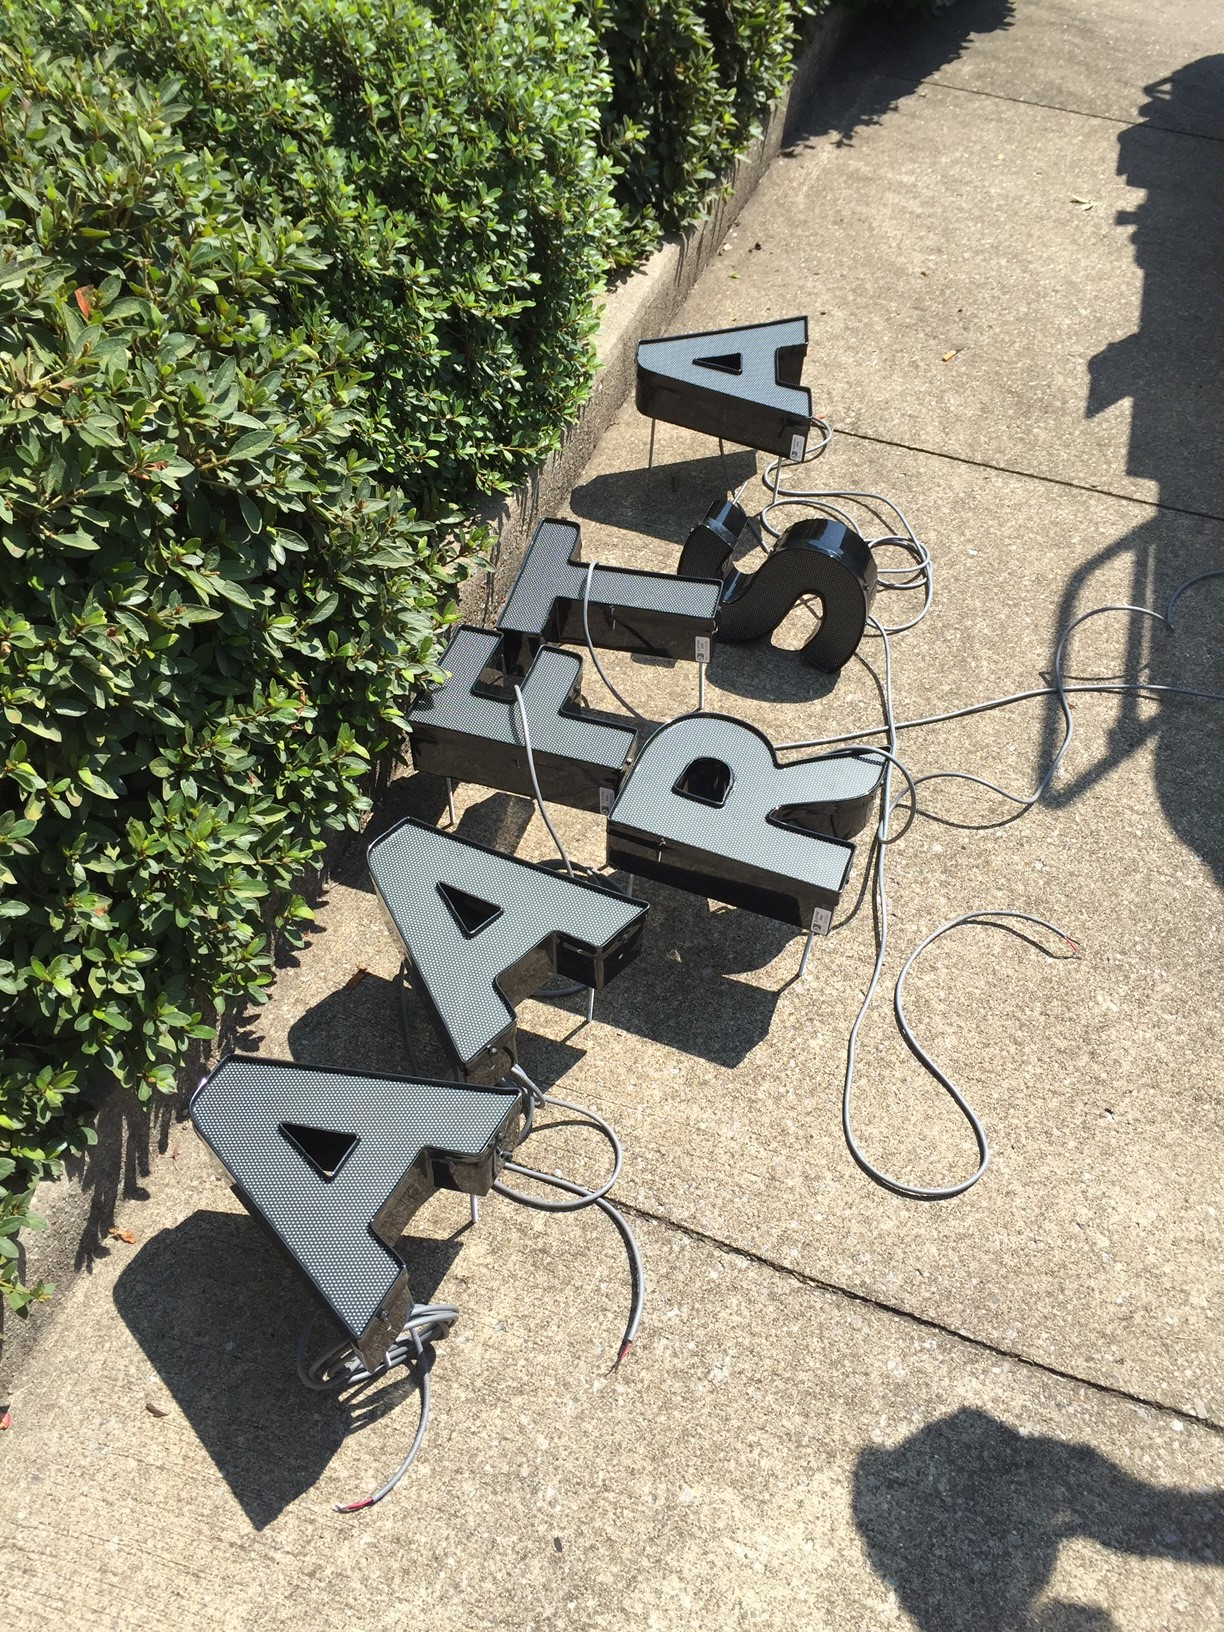 Installing letters